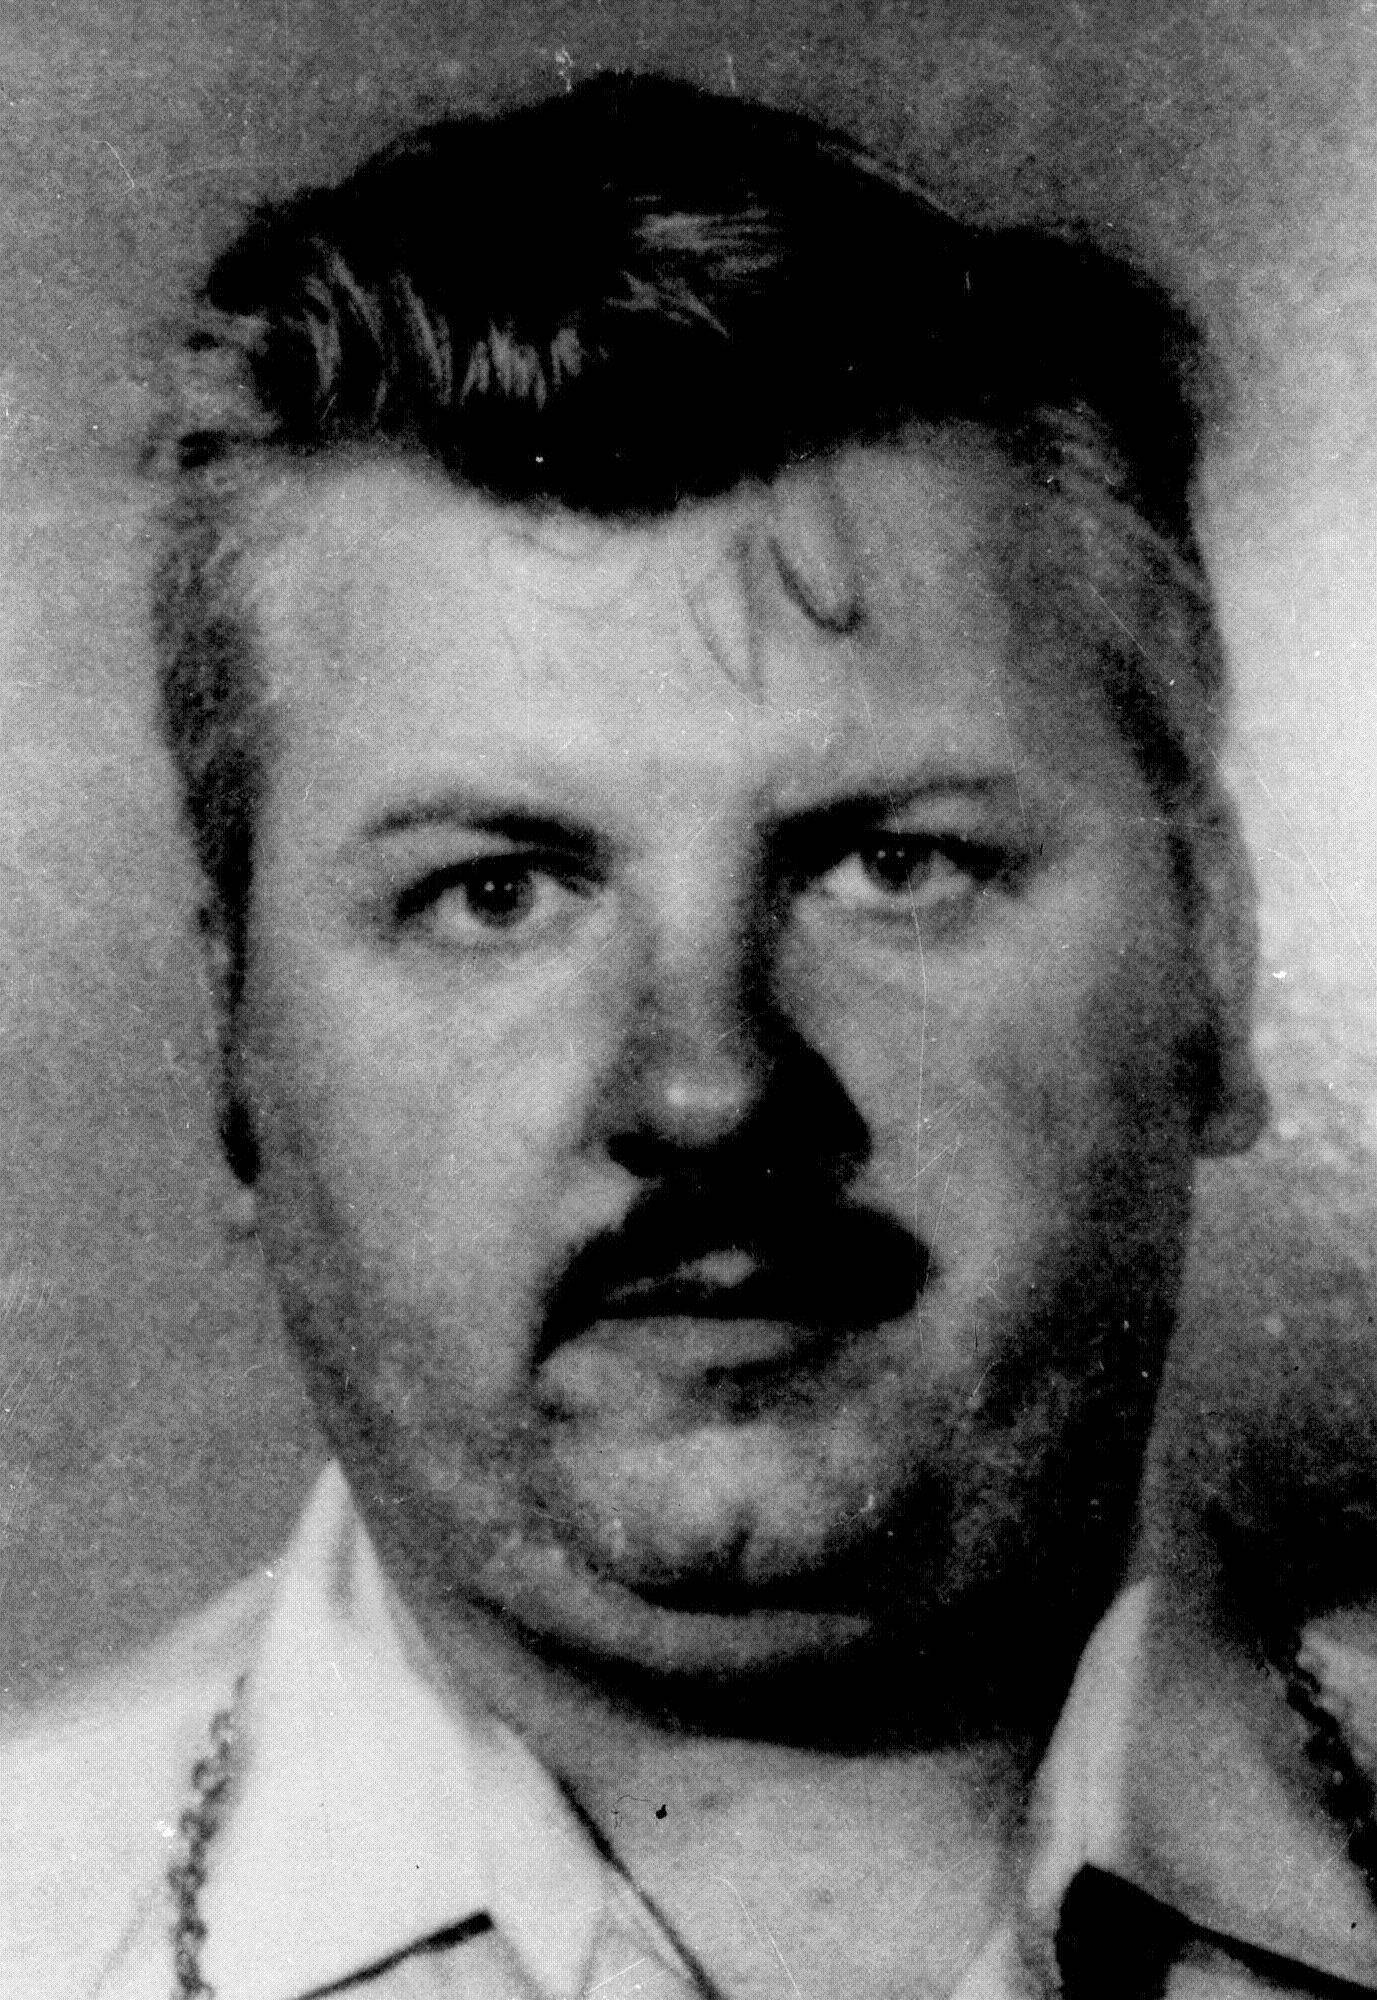 Lawyers believe Gacy didn't act alone